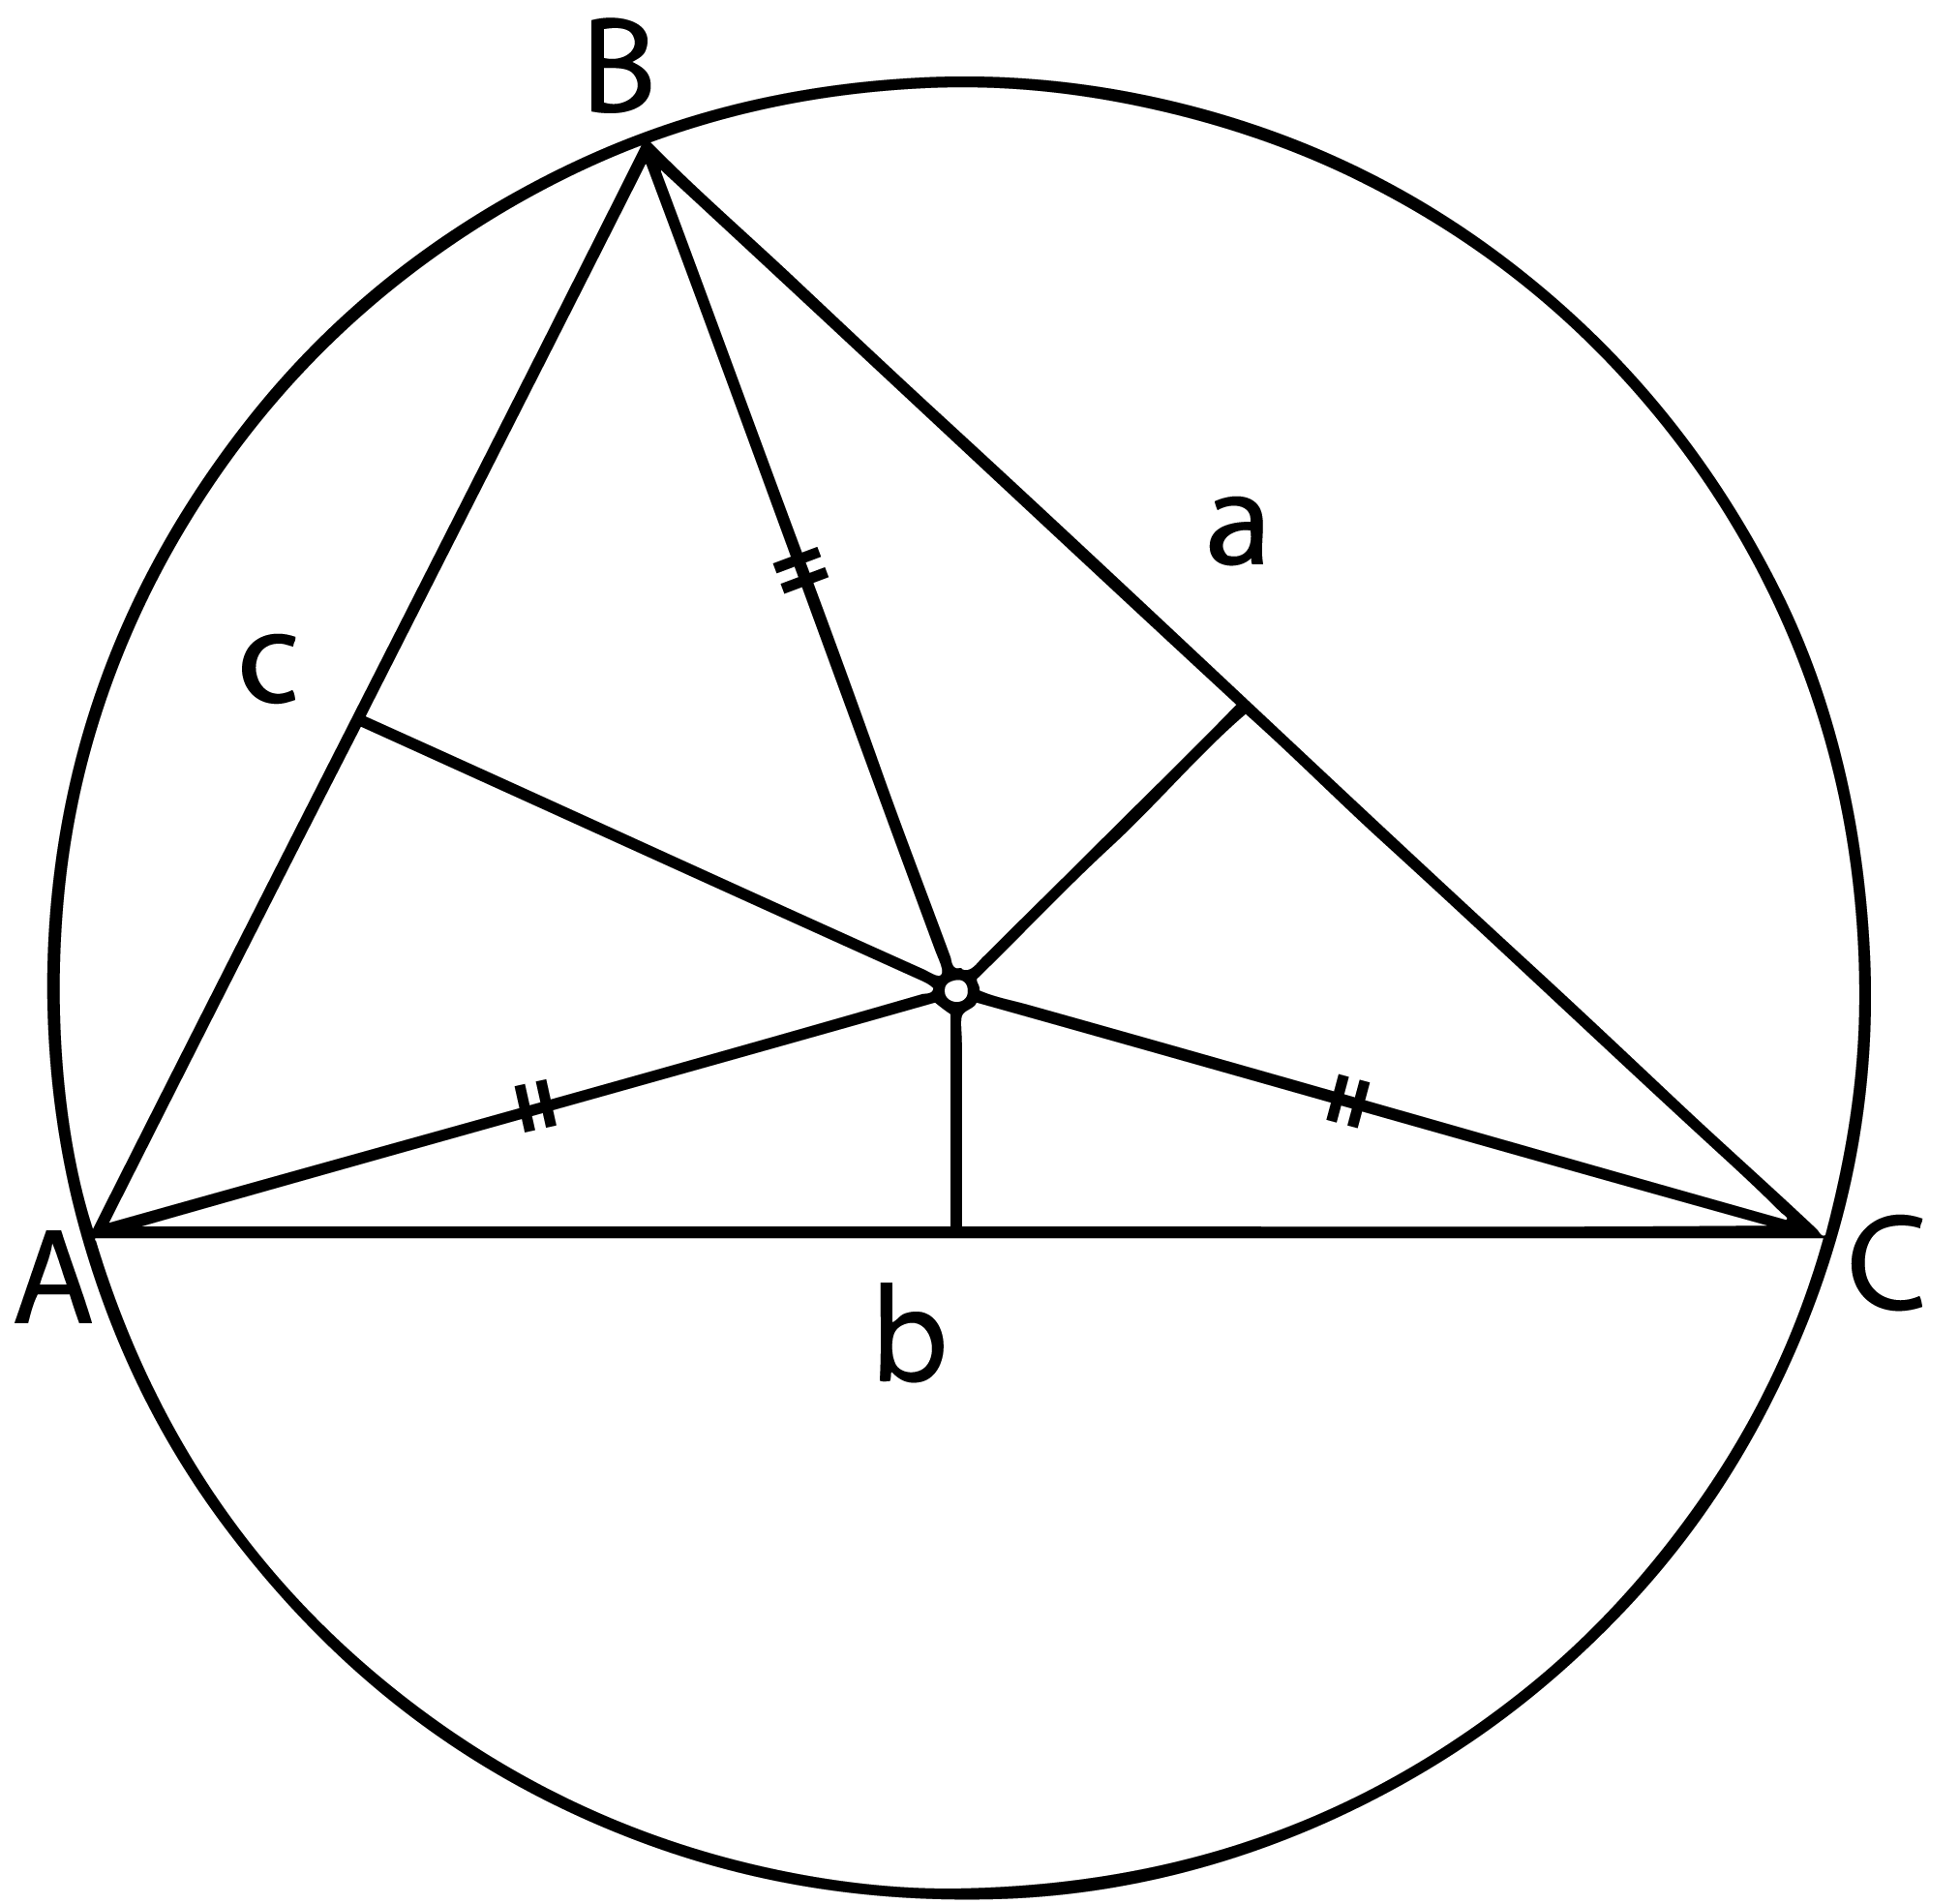 Areas of quadrilaterals within a triangle determined by its